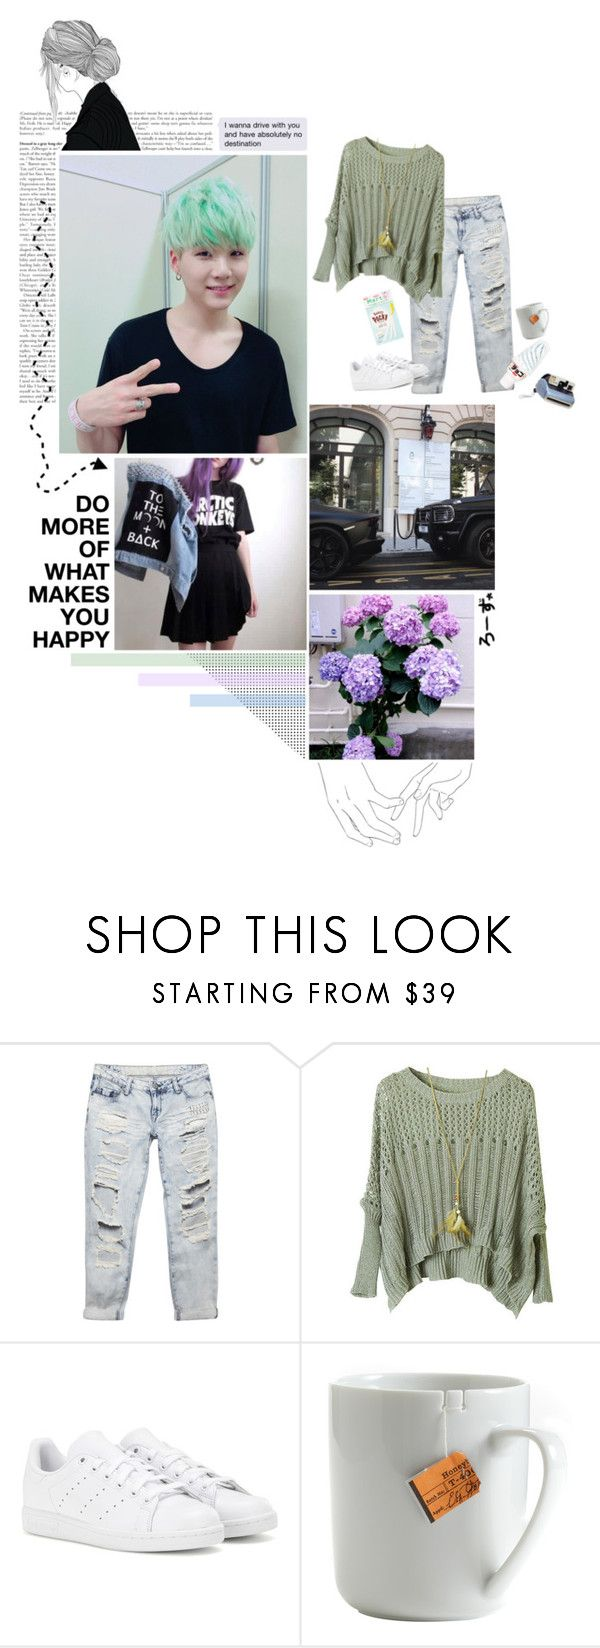 """""""Camouflage~Min Yoongi {Tag}"""" by fantasy-lover-0719 ❤ liked on Polyvore featuring Wet Seal, adidas, Aime, le mouton noir & co., Polaroid and bedroom"""